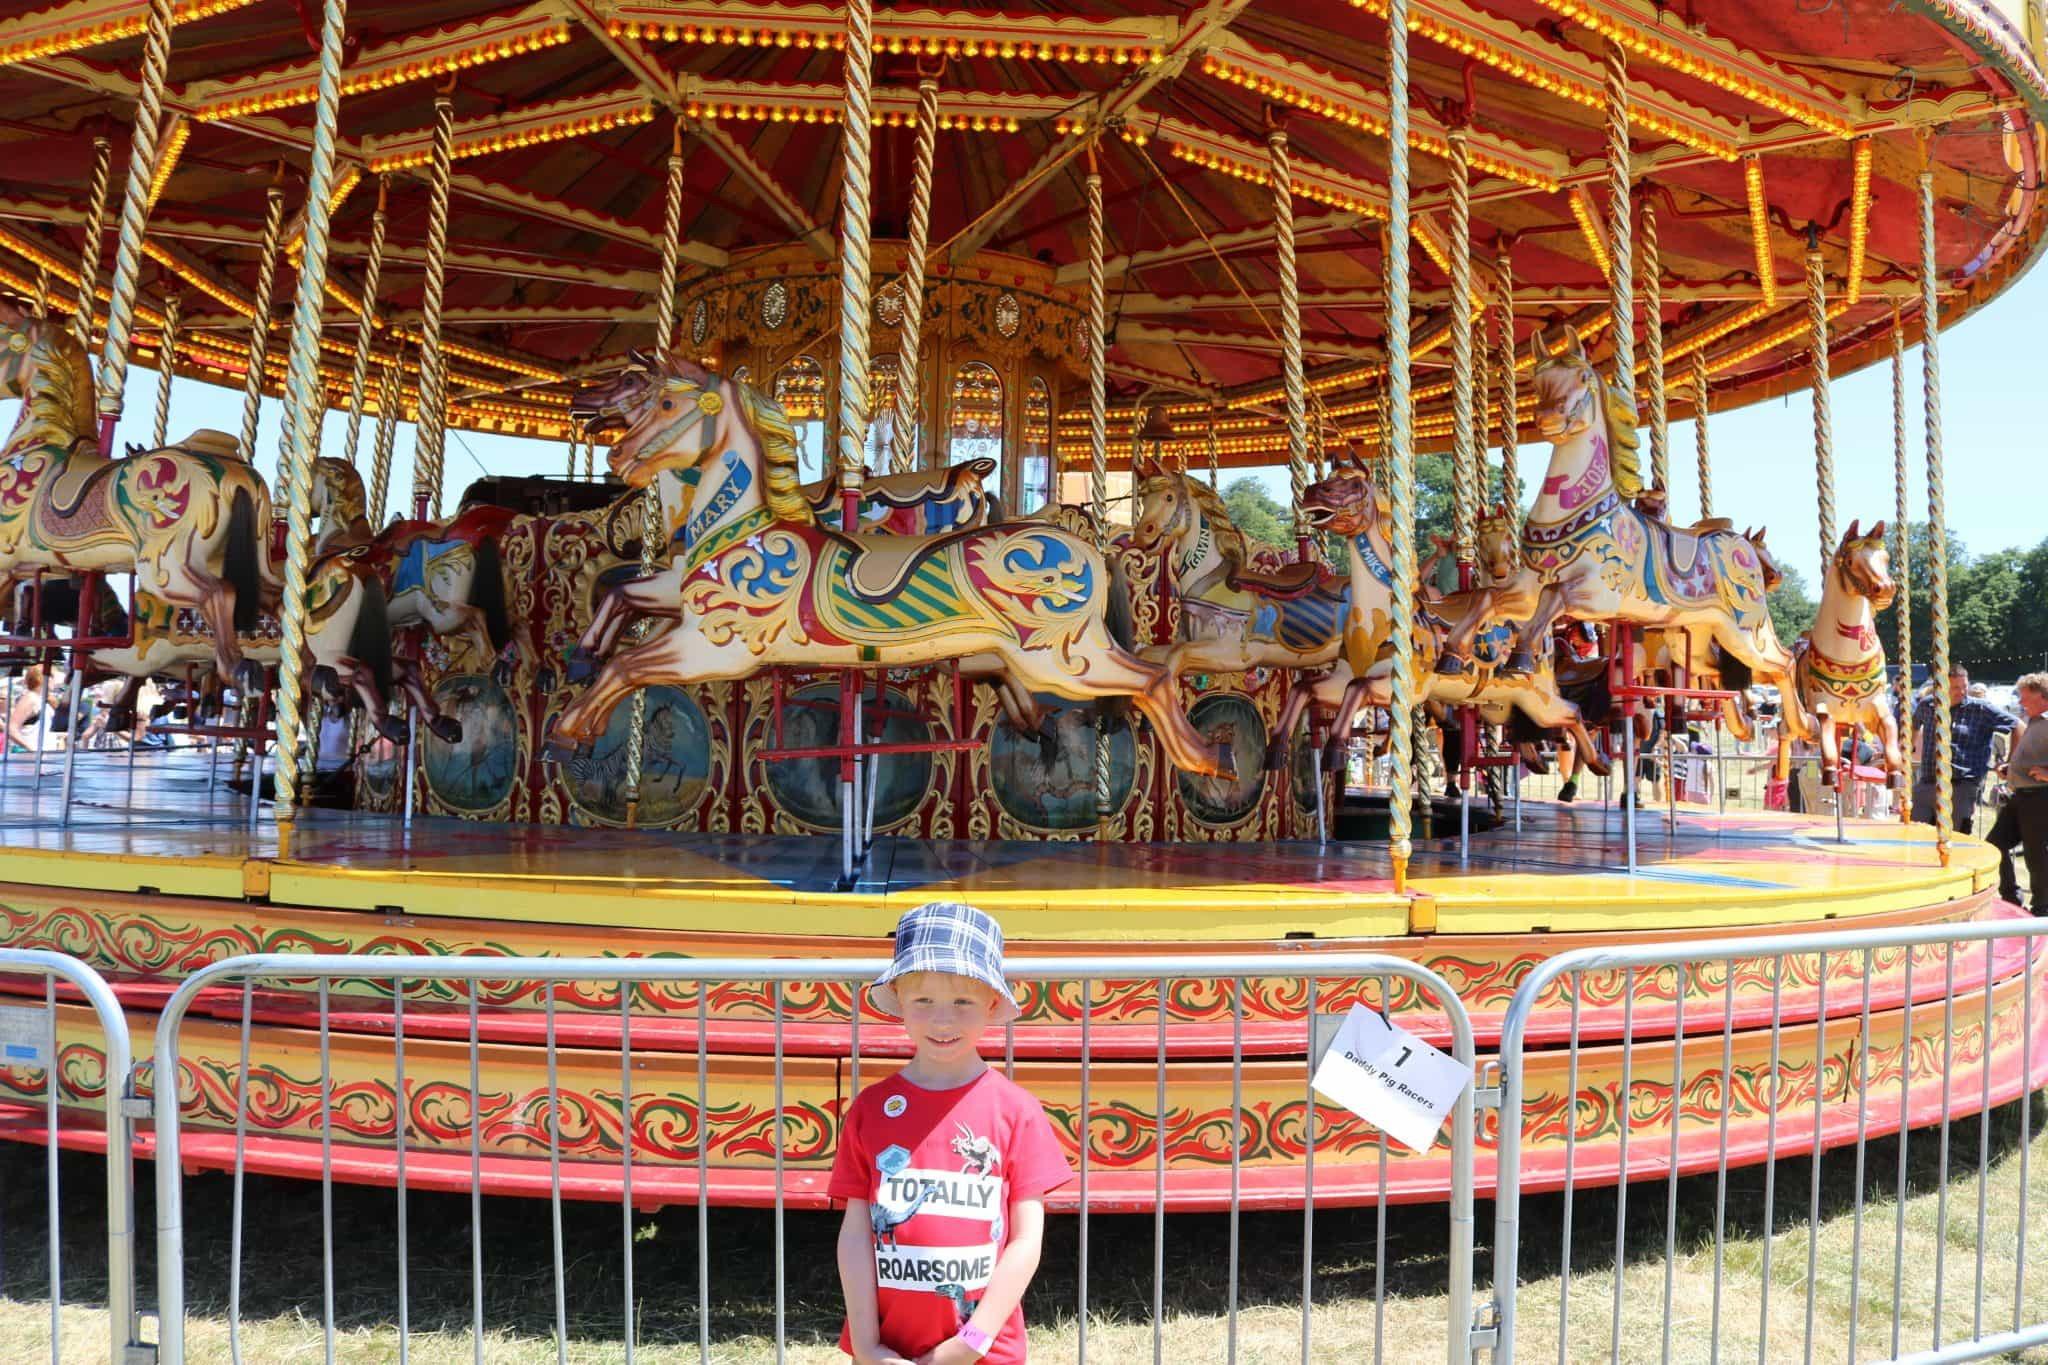 One of the many Fairground Rides at Geronimo